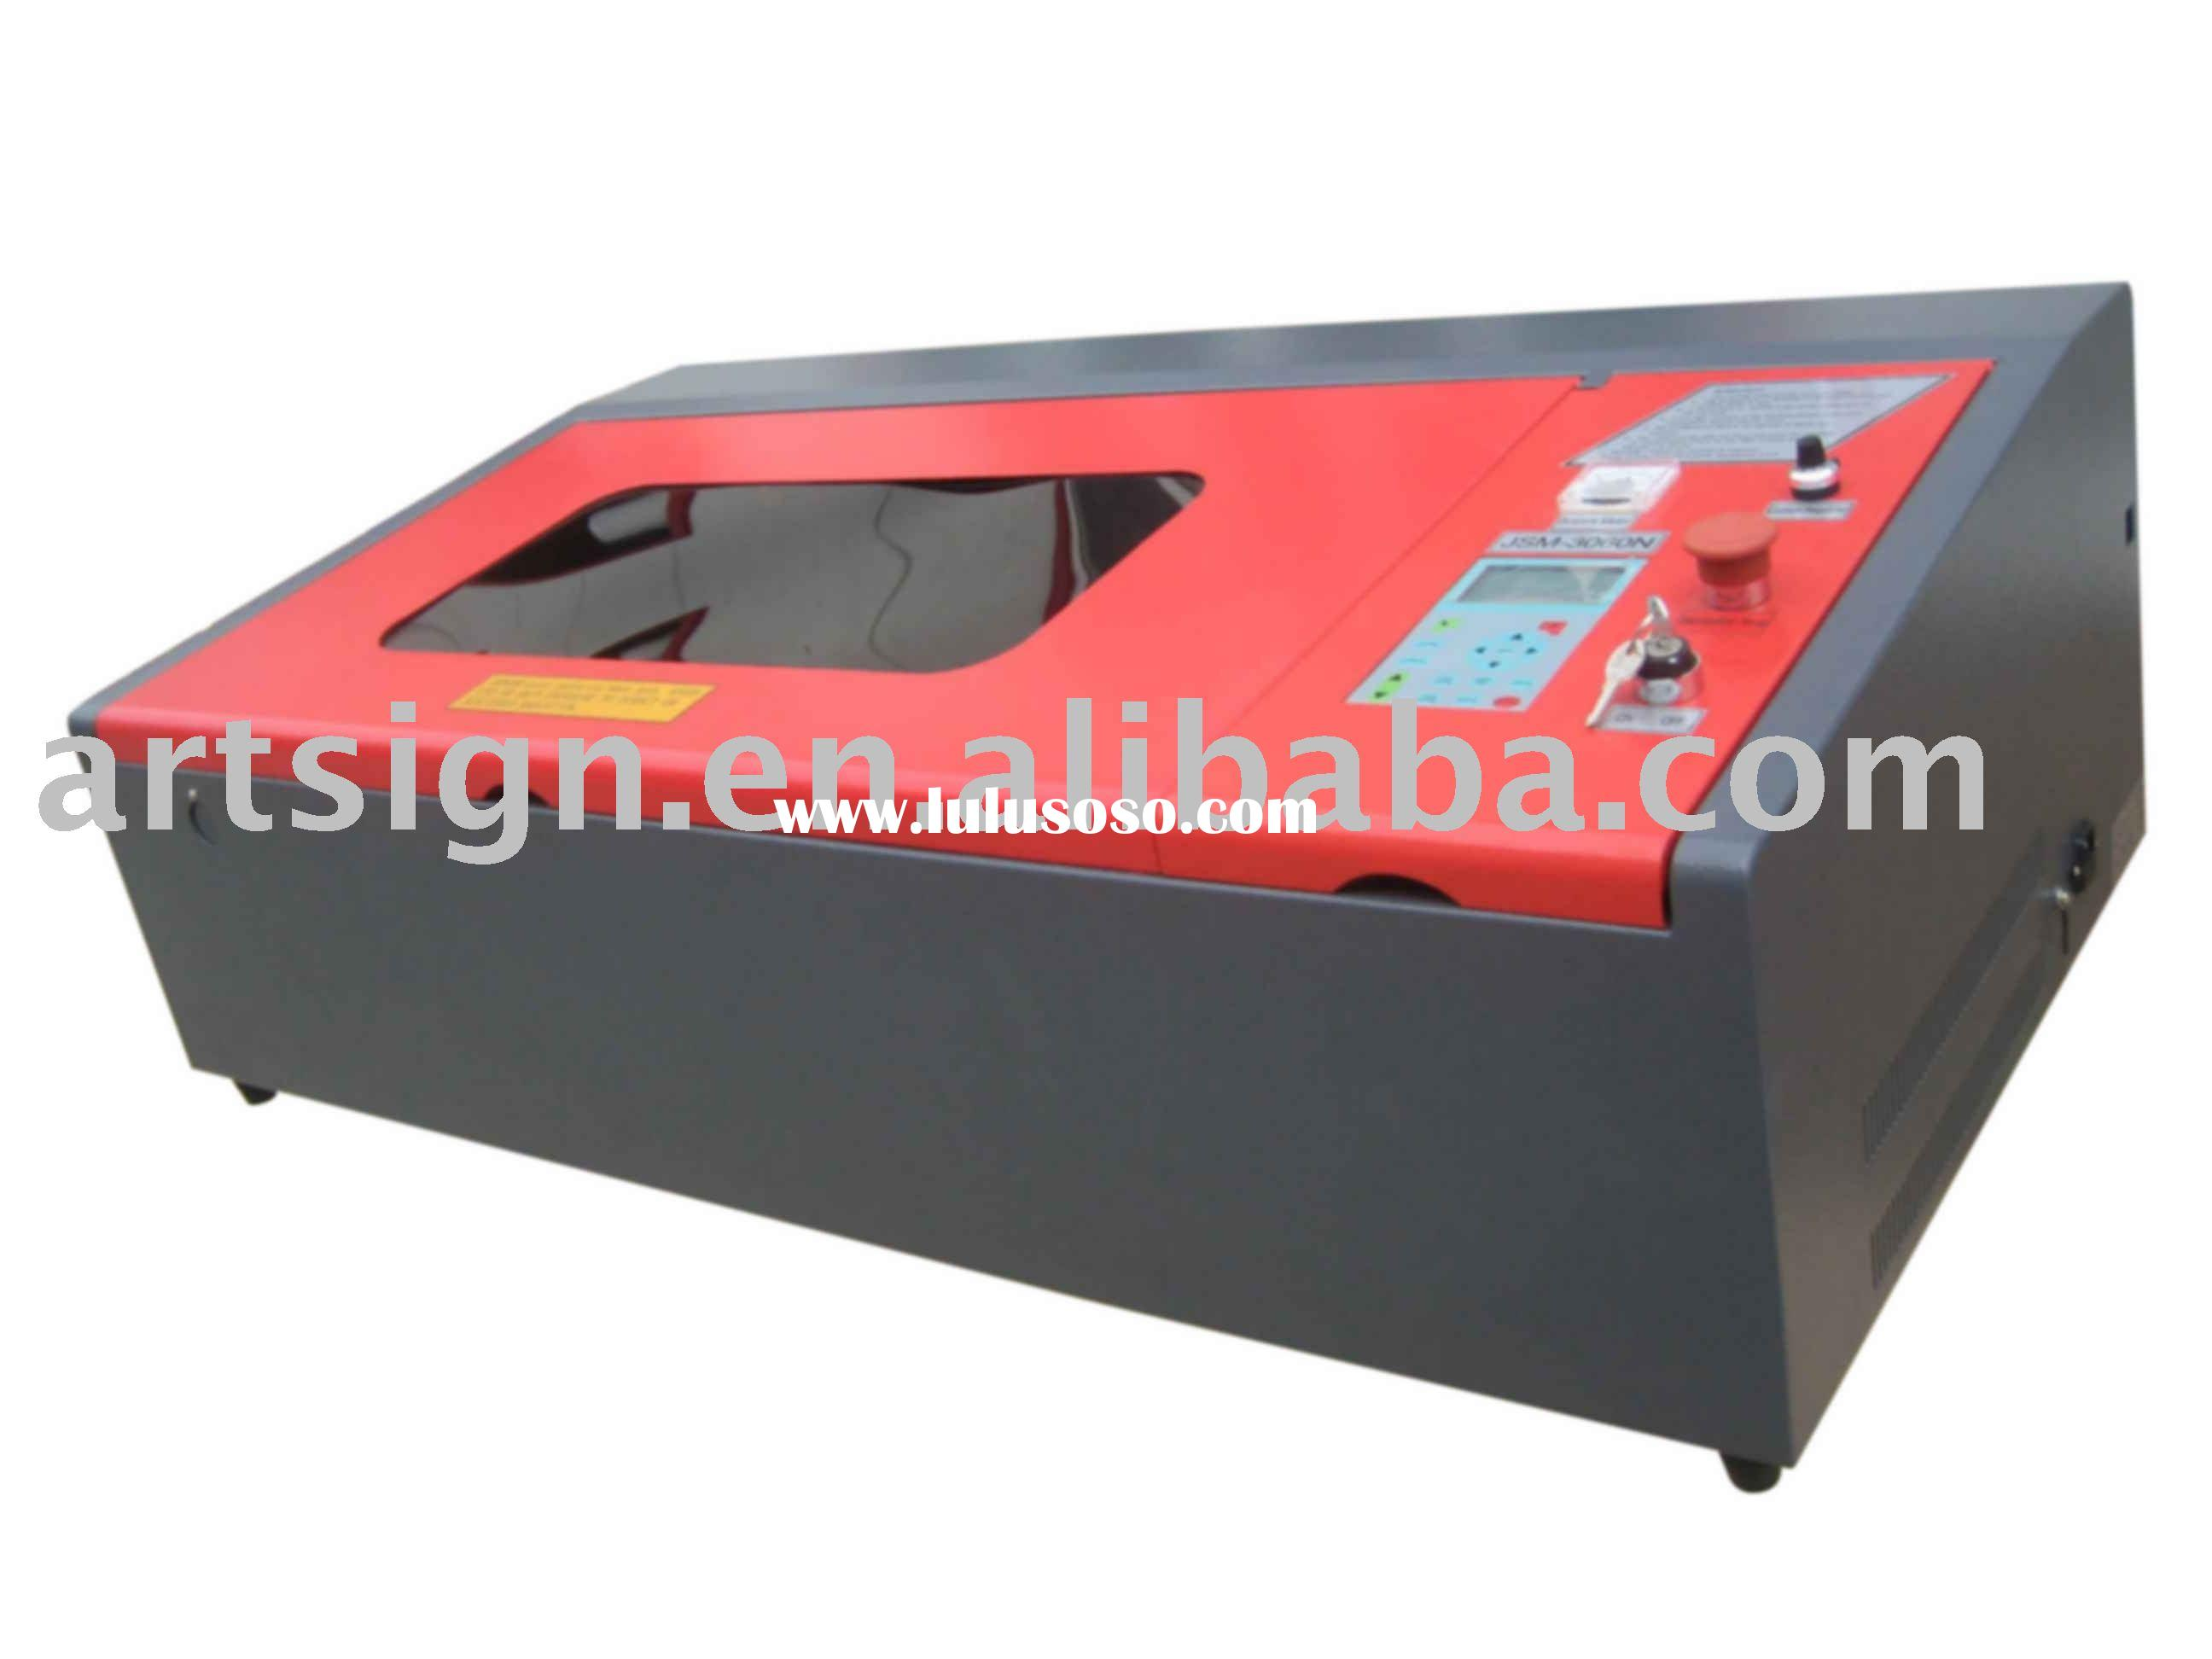 Desktop Laser Engraving Machine JSM3040U with Lasercut software